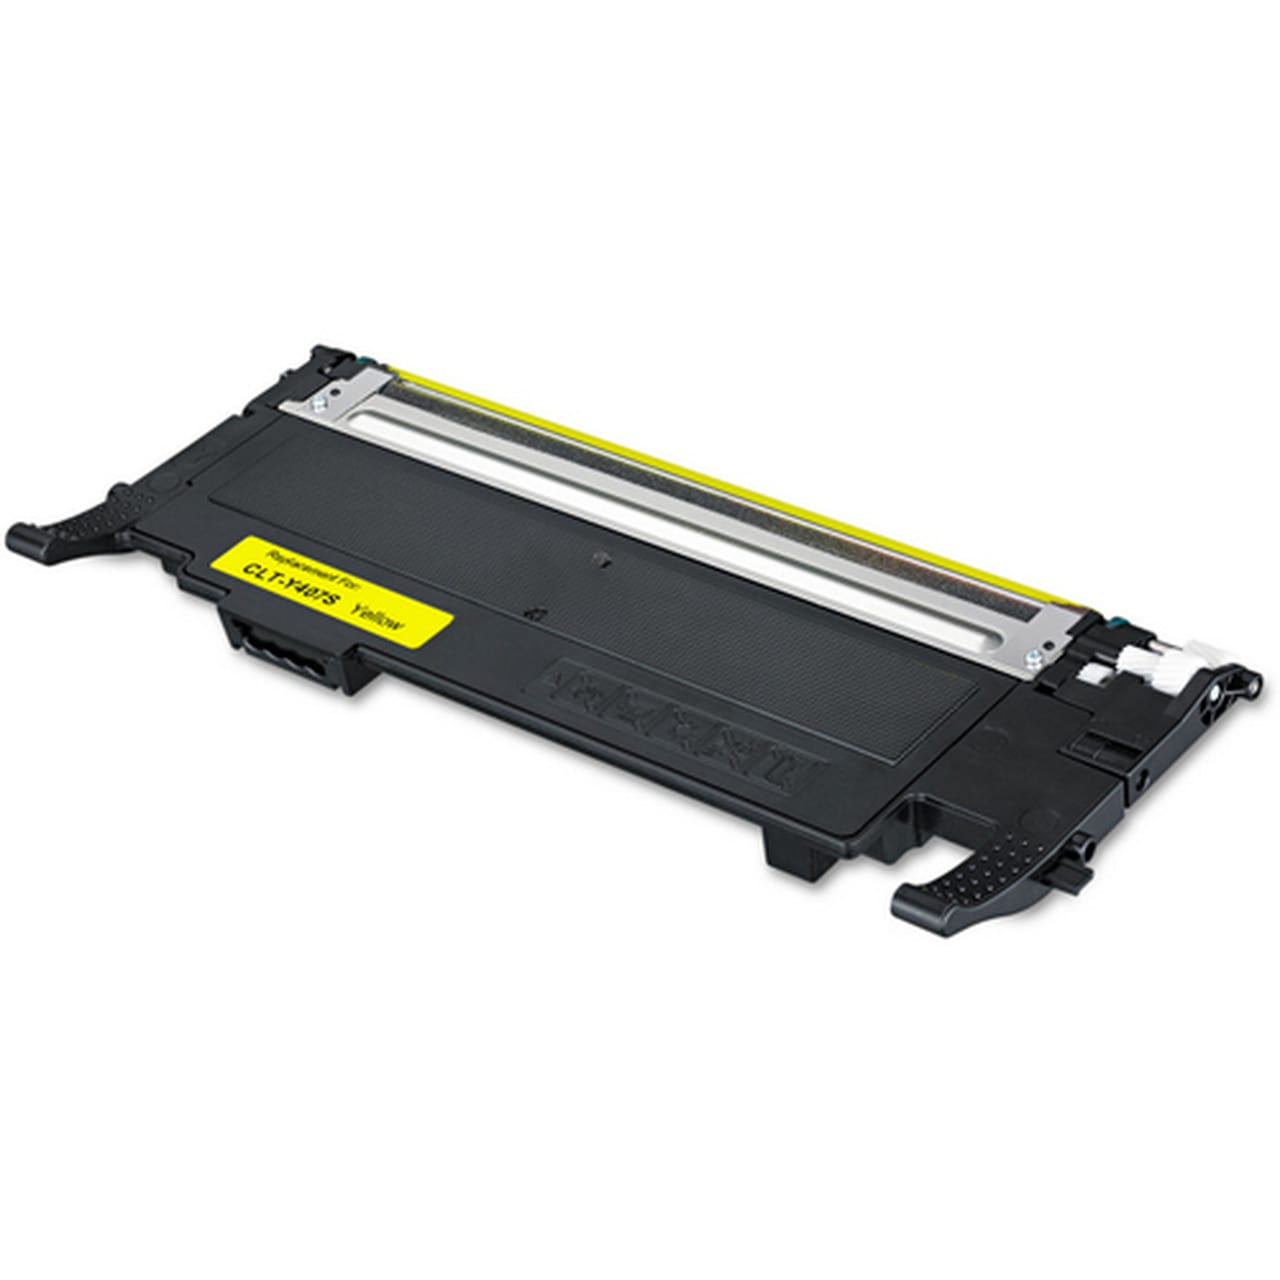 CLT-Y407S Toner Cartridge - Samsung Remanufactured (Yellow)